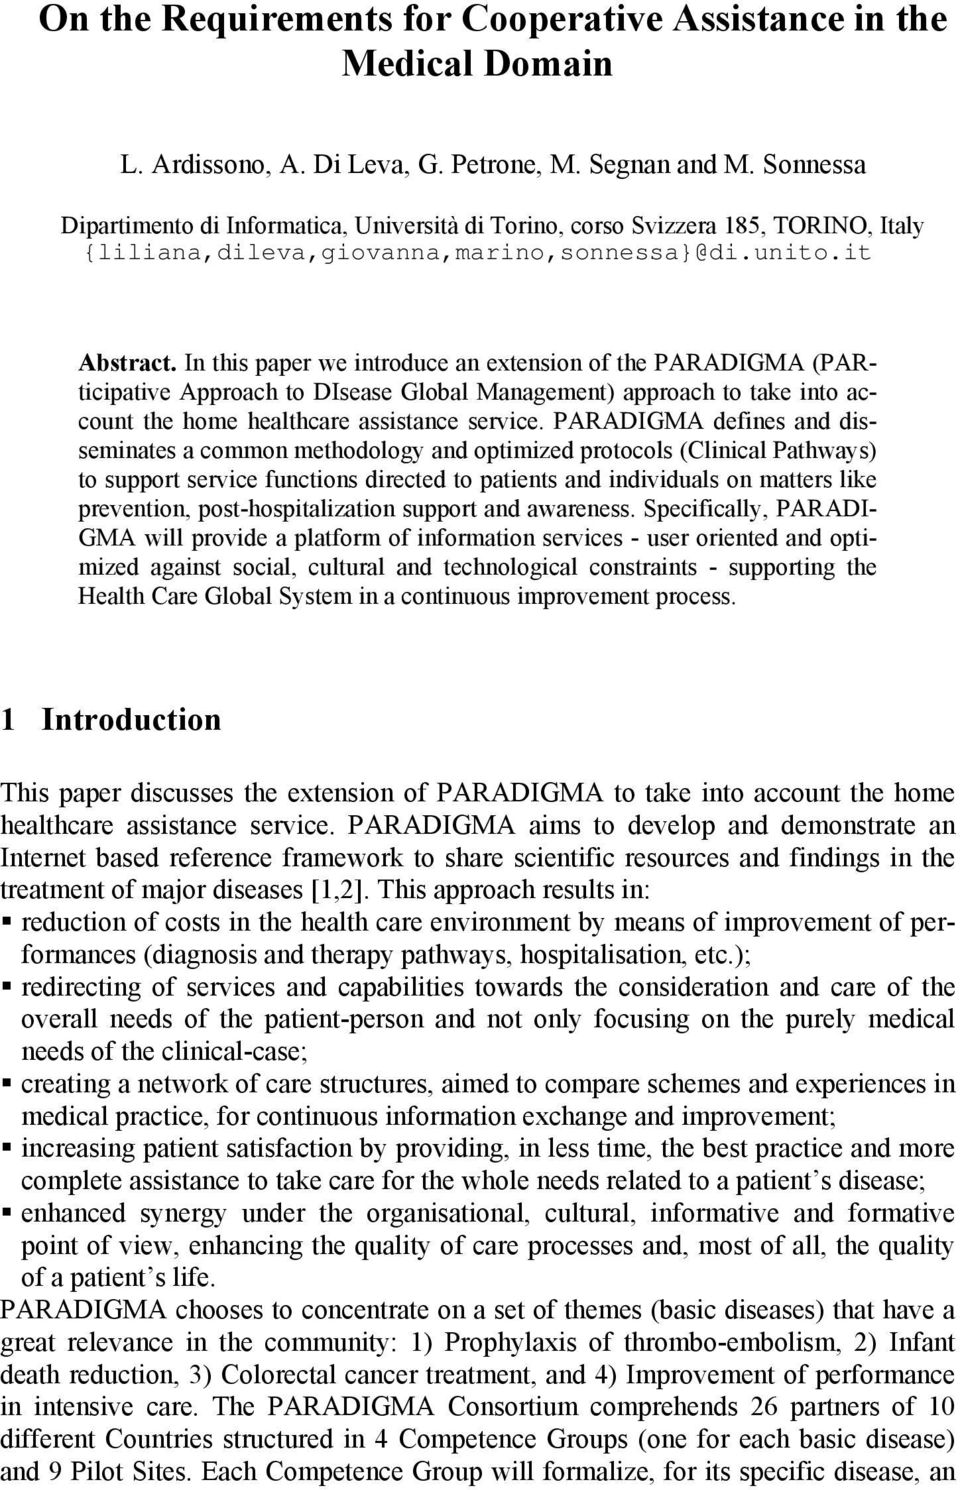 In this paper we introduce an extension of the PARADIGMA (PARticipative Approach to DIsease Global Management) approach to take into account the home healthcare assistance service.